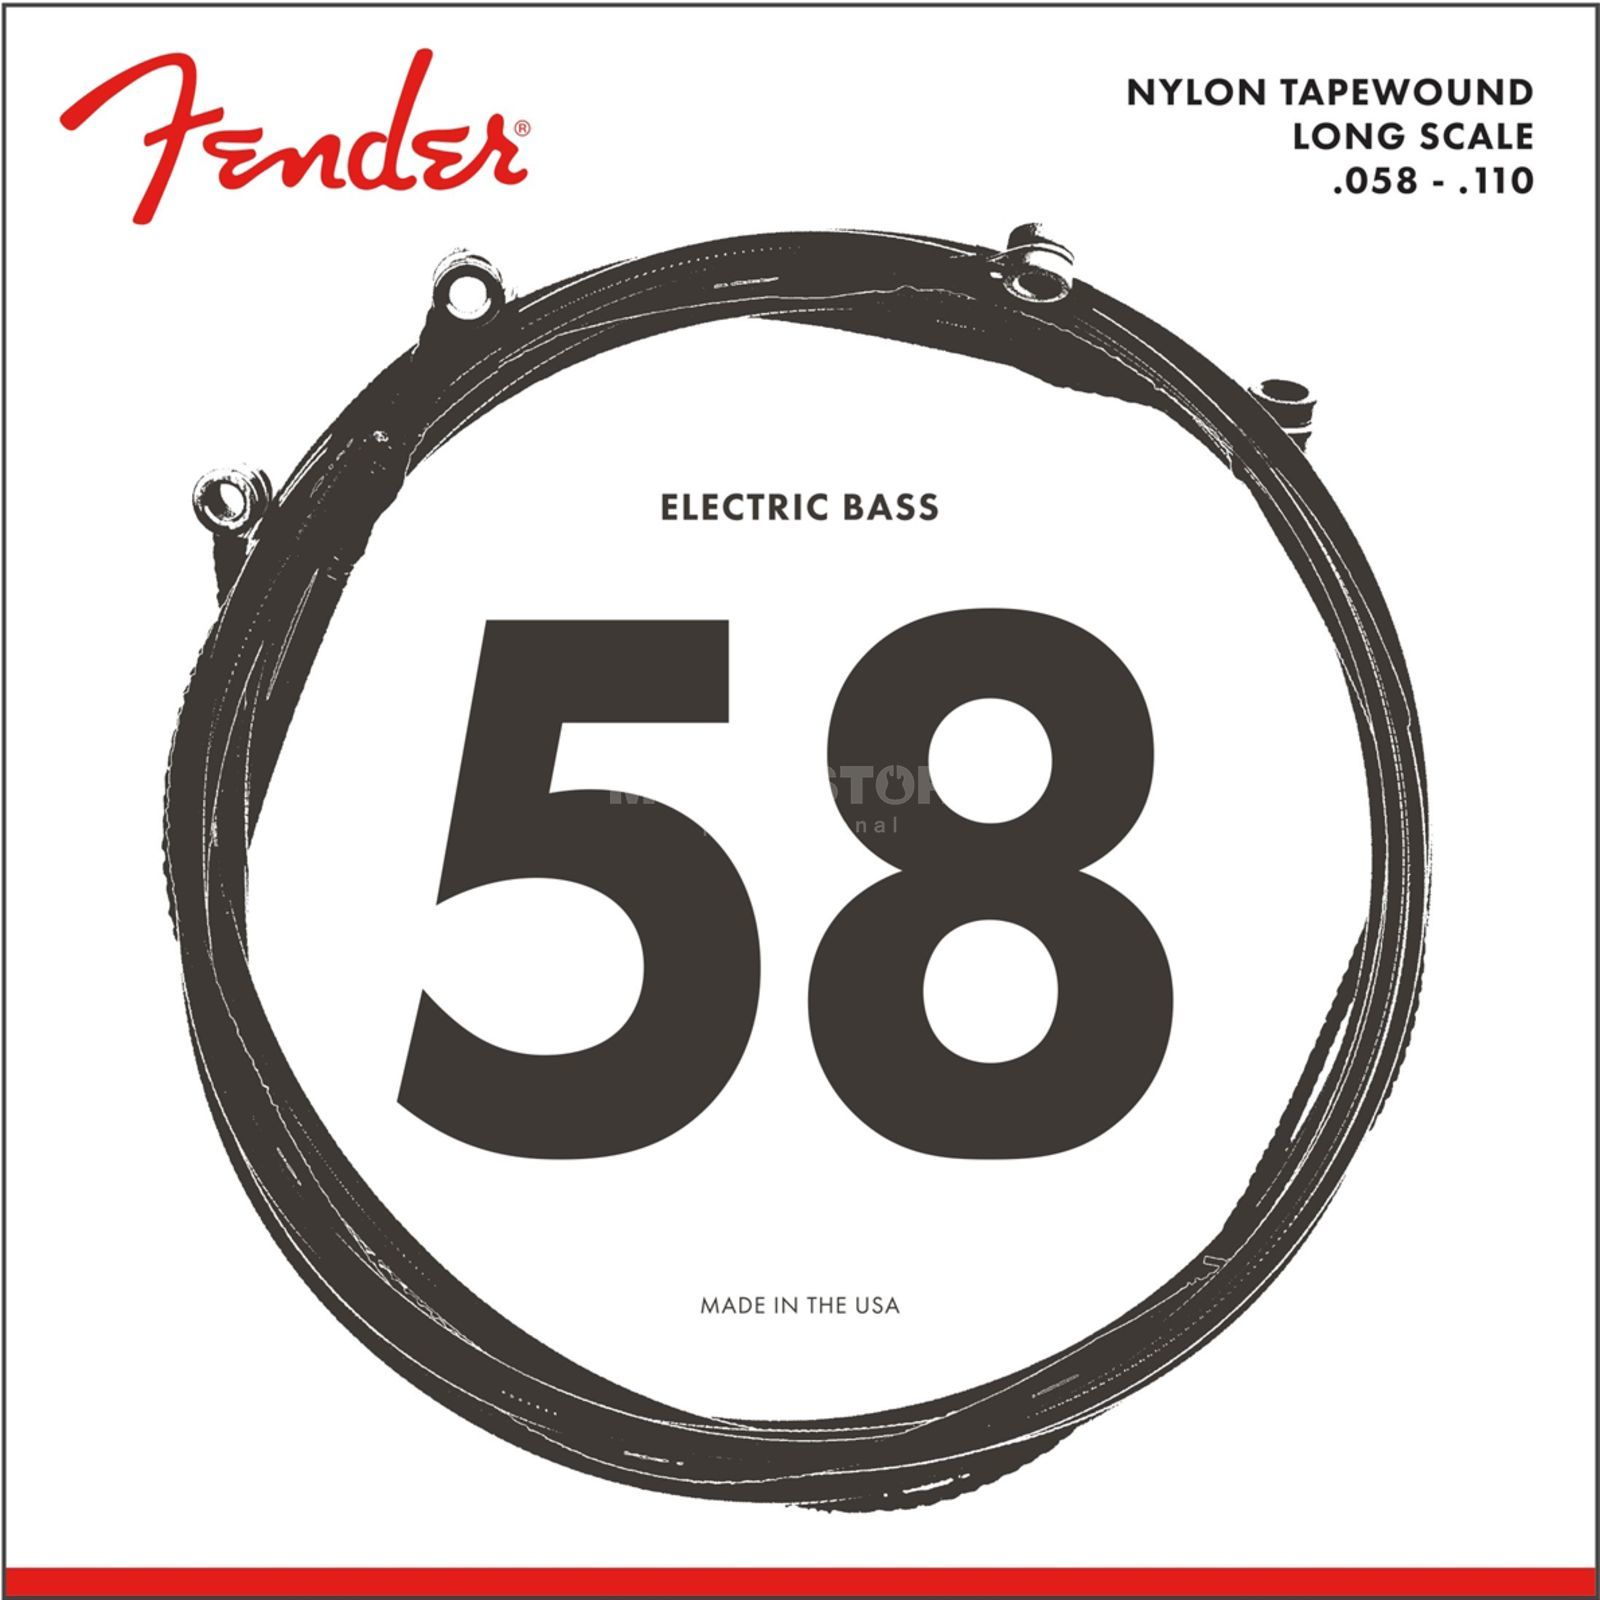 Fender Strings Nylon 9120 58-110 Nylon Tape Wound Immagine prodotto